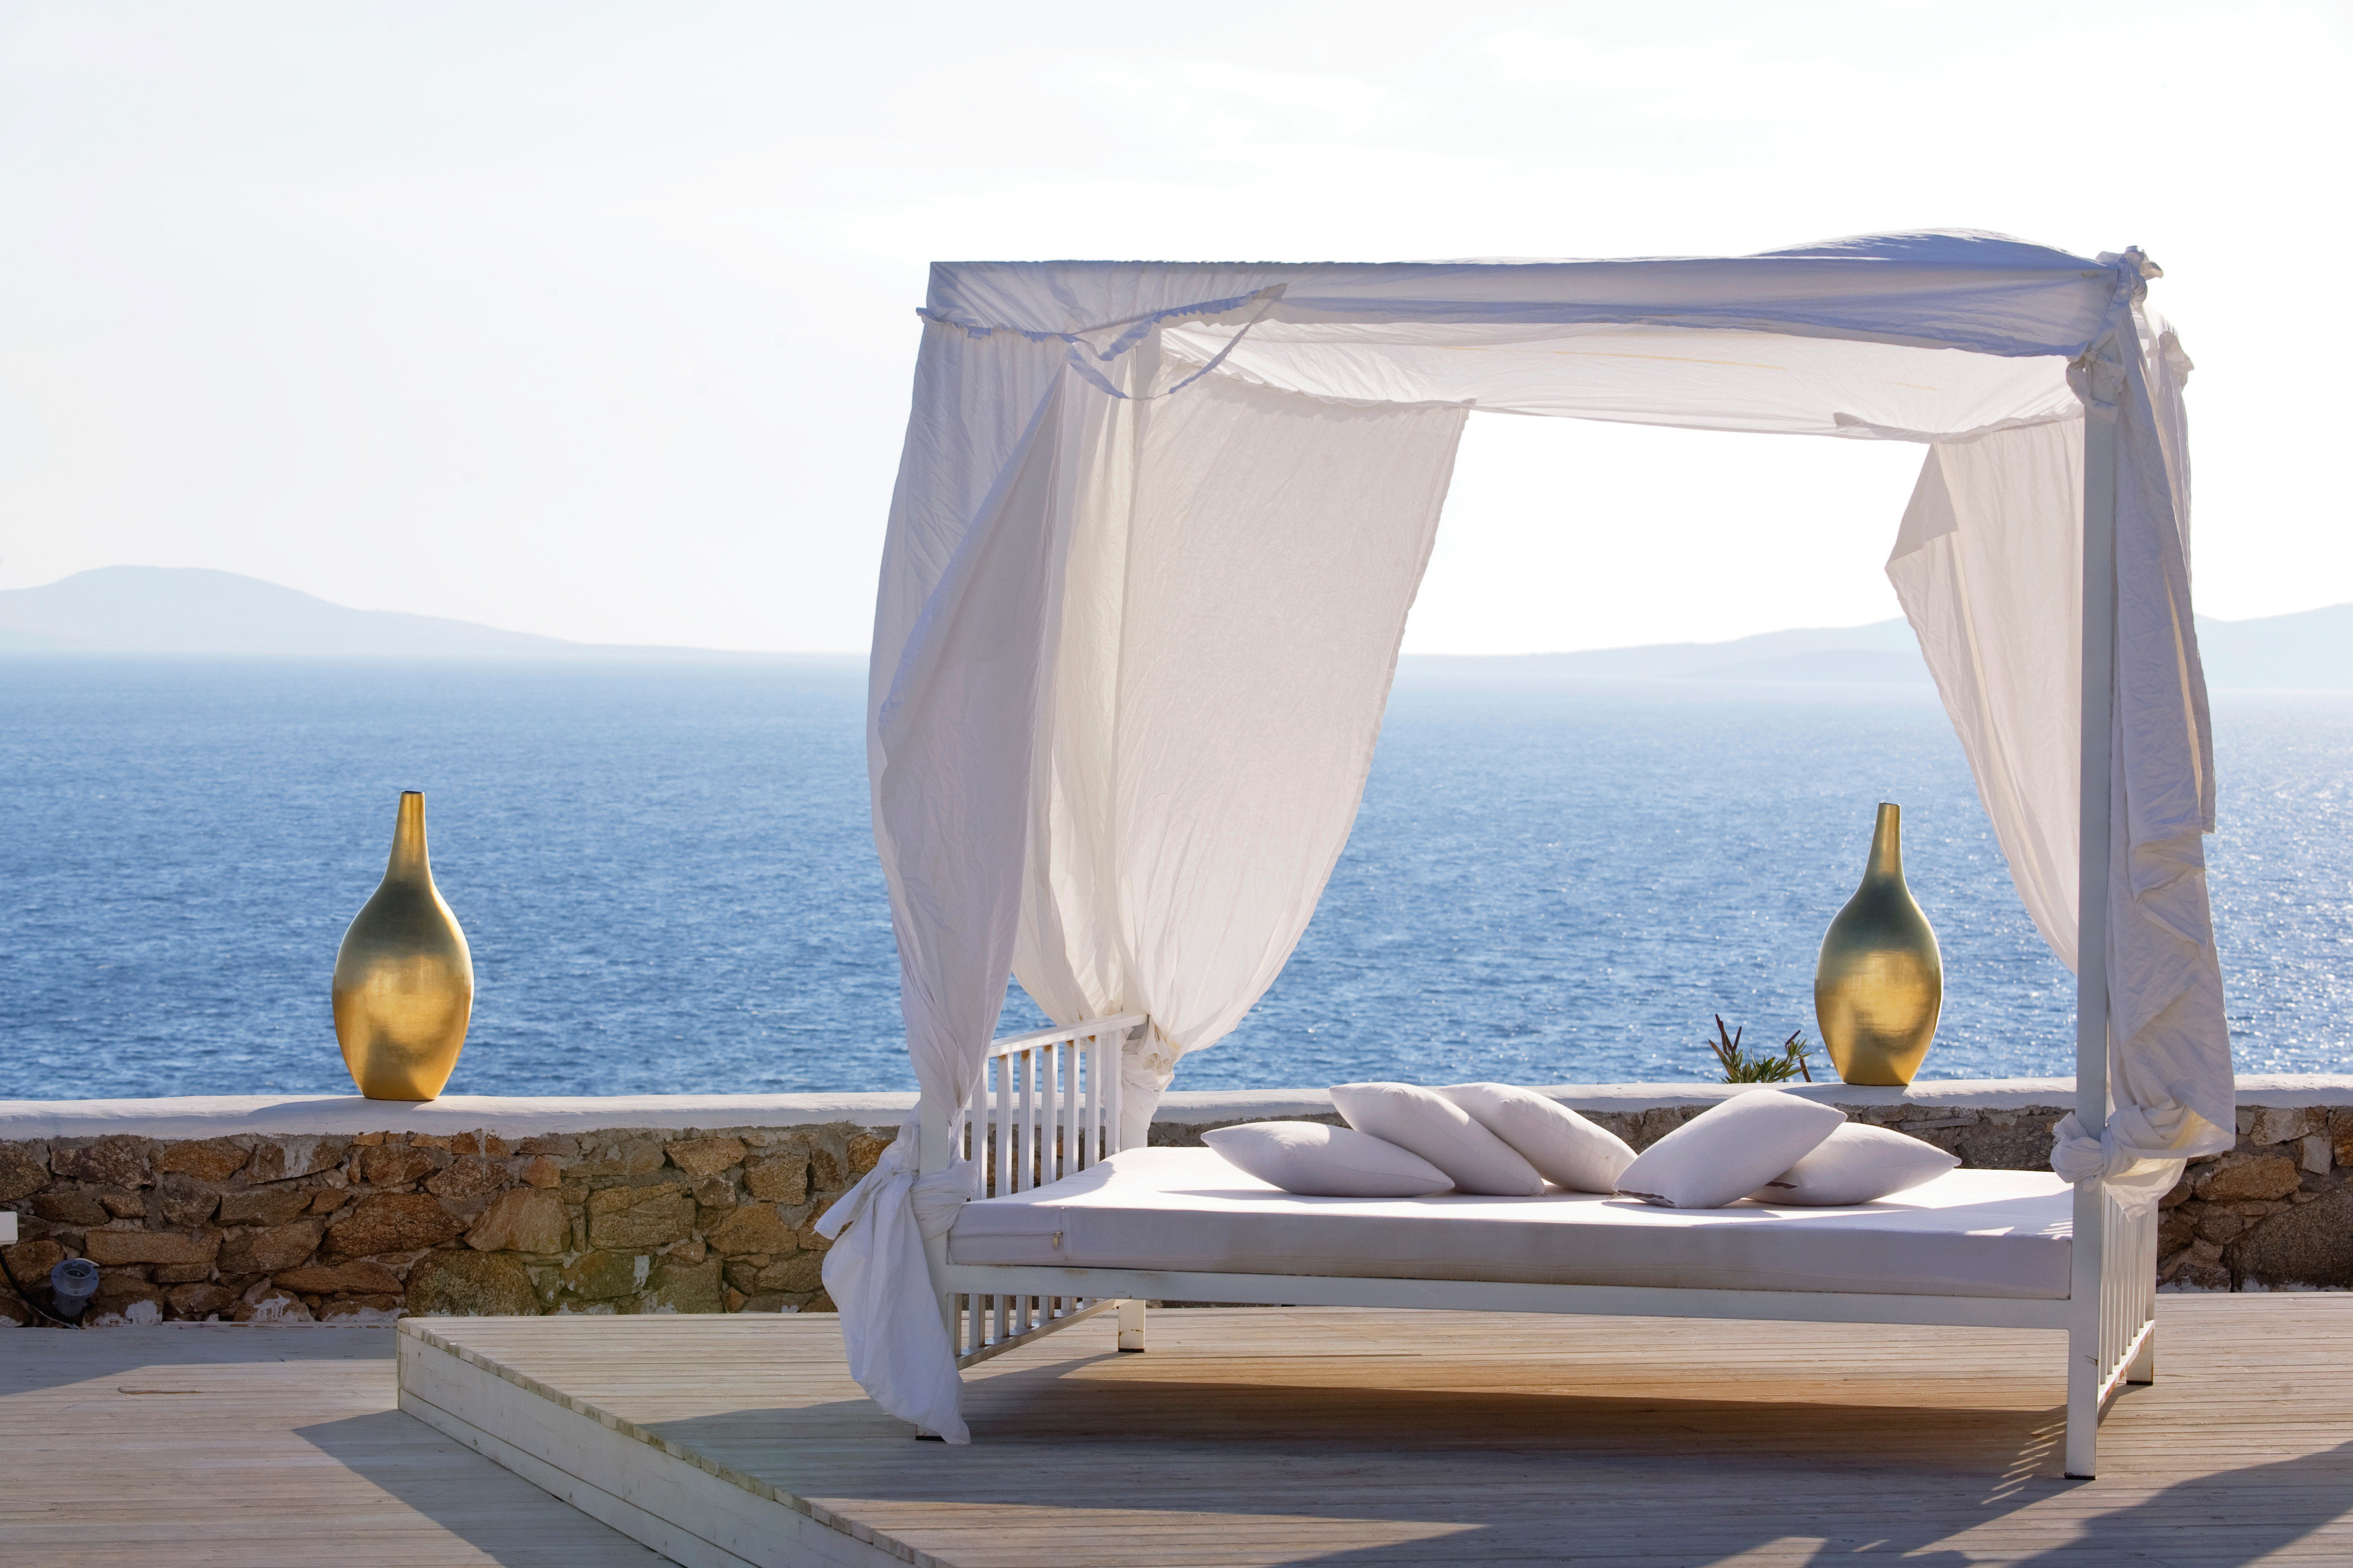 Beach Beachfront Boutique Deck Hotels Luxury Romance Scenic views Trip Ideas sky water studio couch overlooking